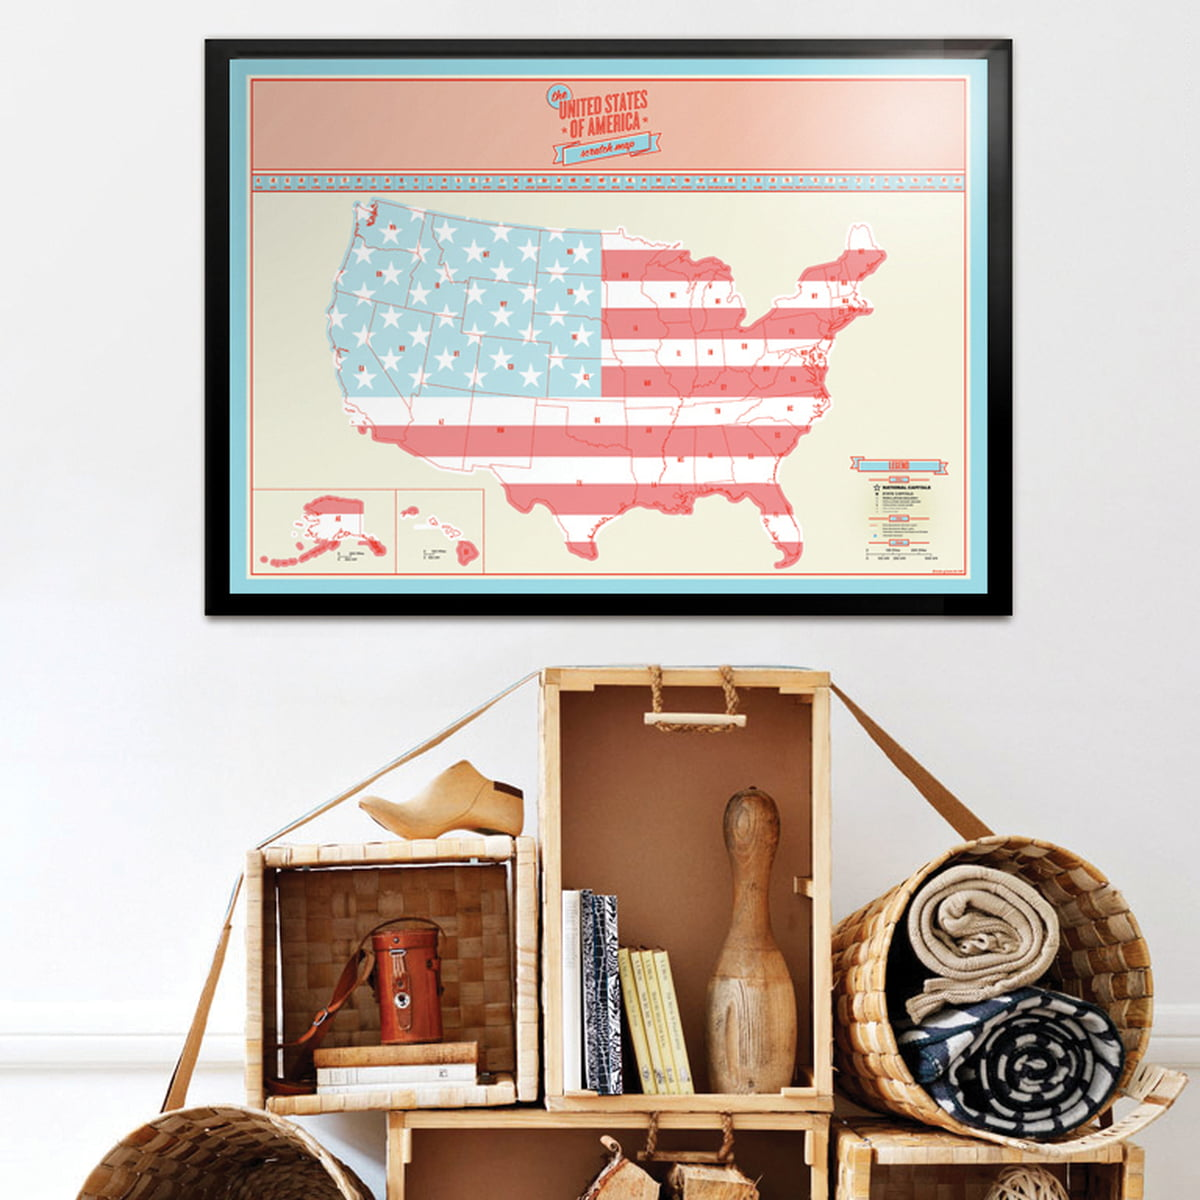 The Scratch Map USA by Luckies in the shop